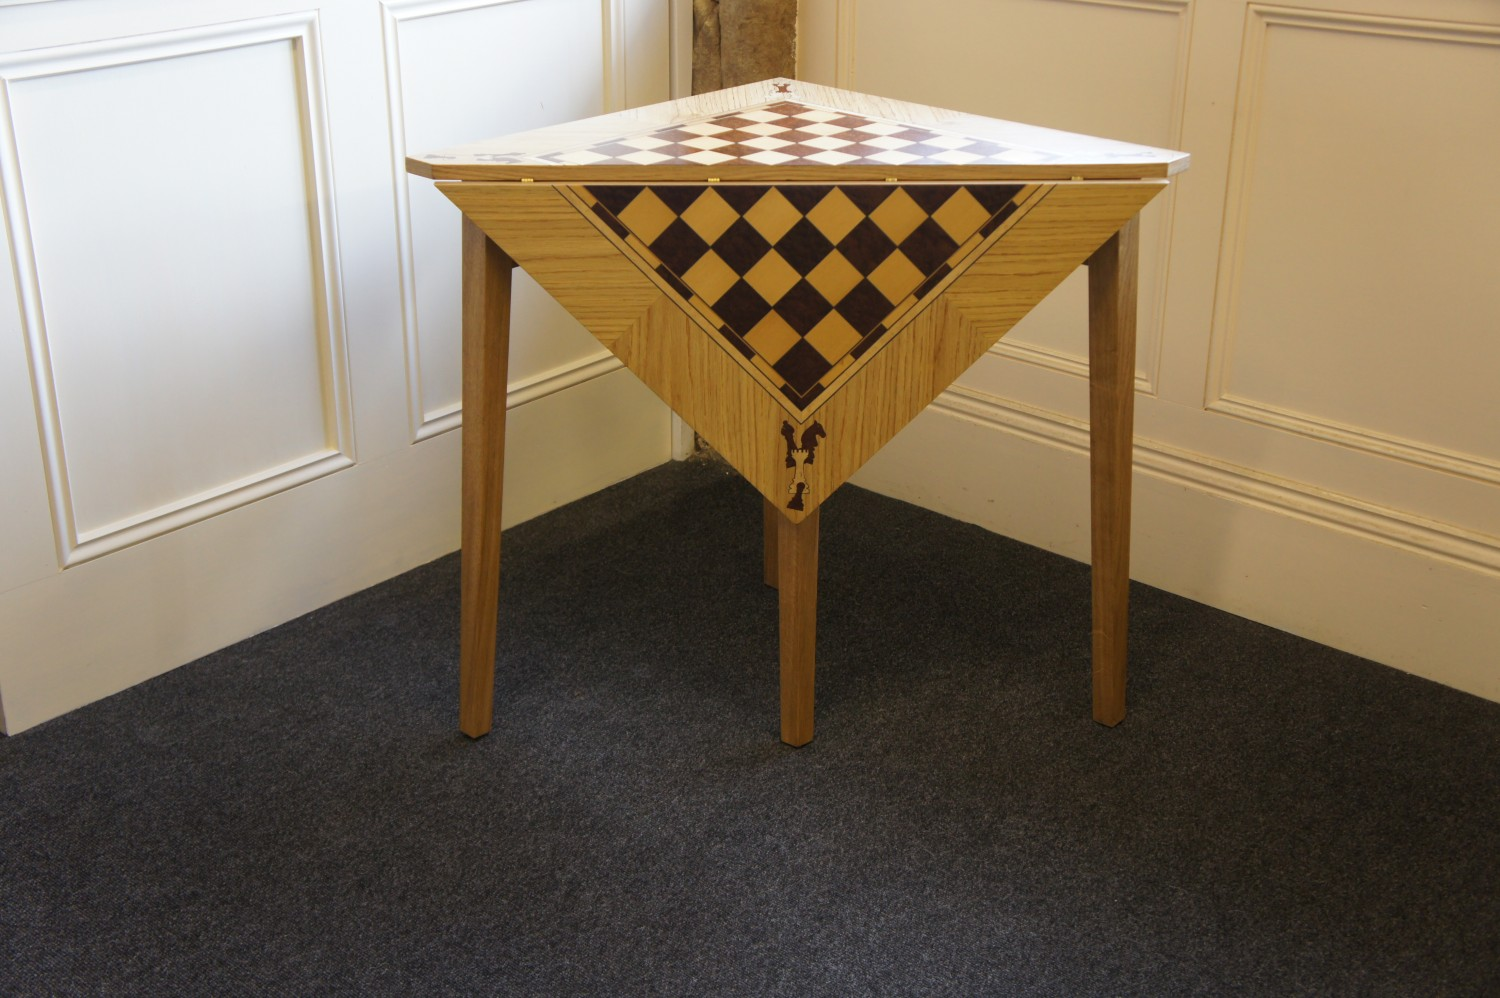 Table-Chess-Table-with-veneered-detail-1